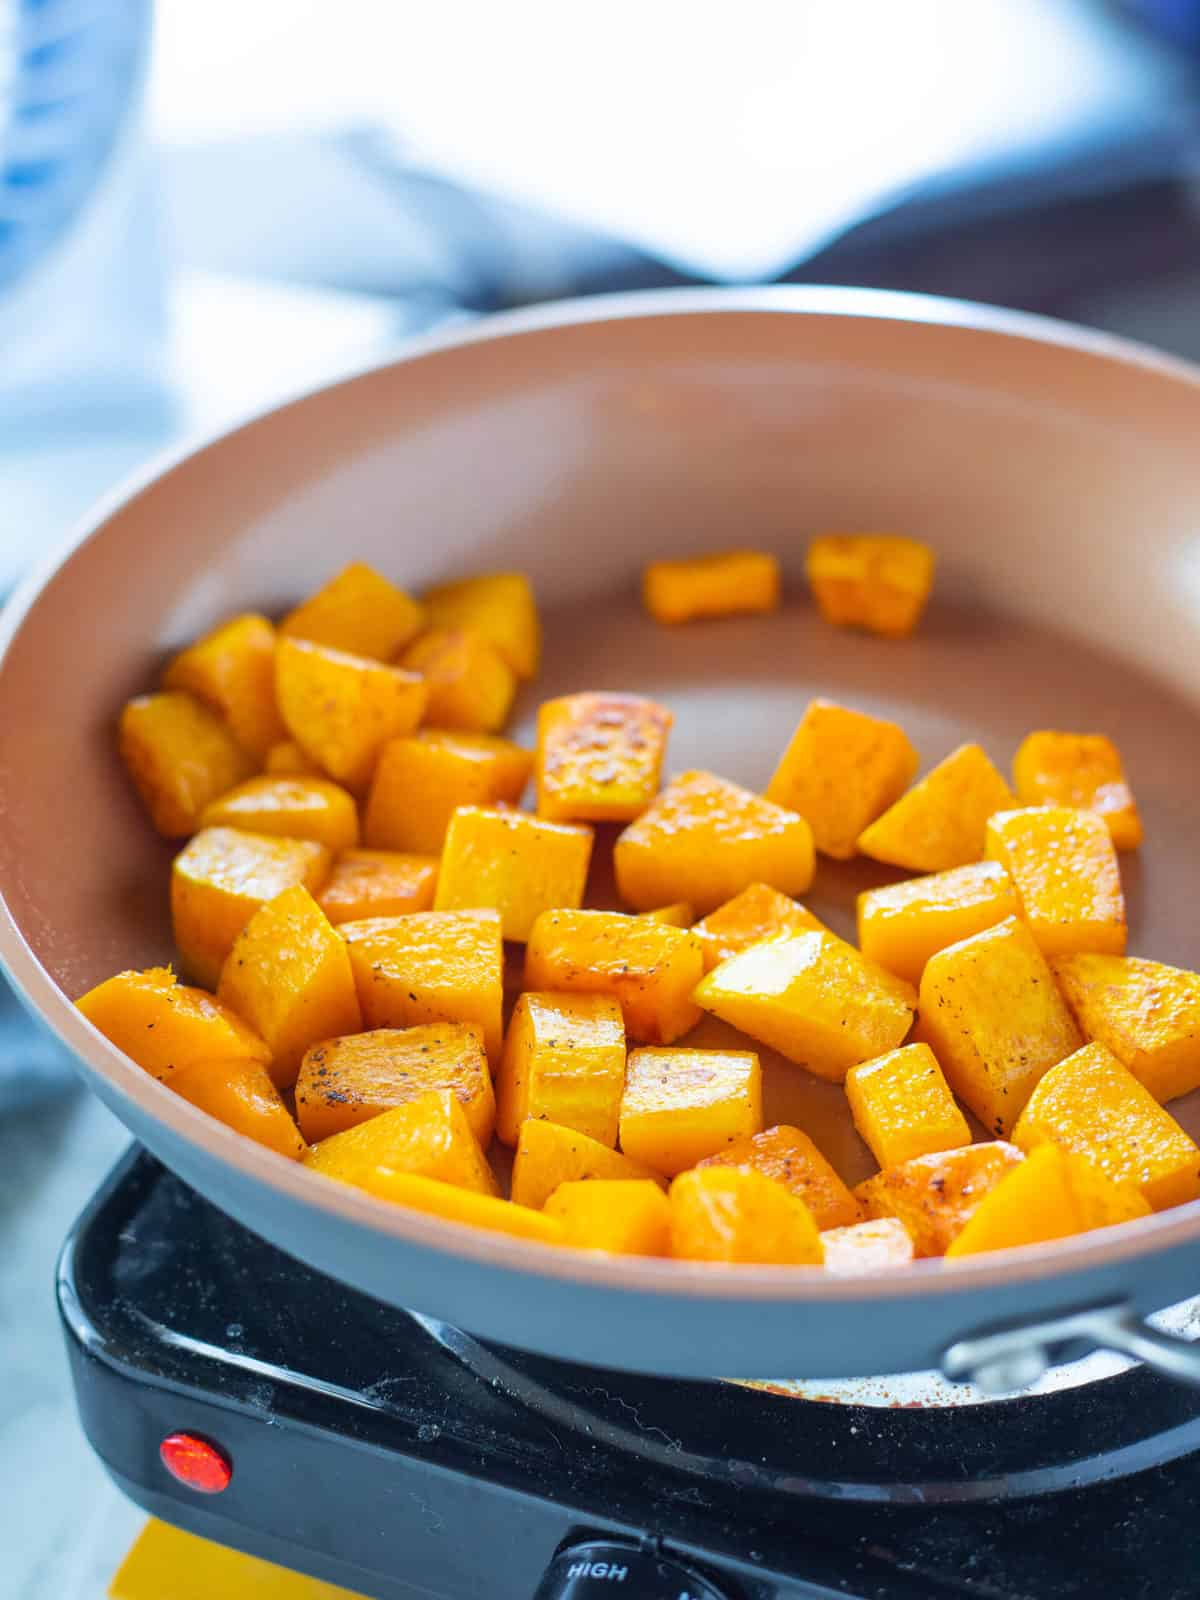 Chopped squash being shown in a medium sized skillet.